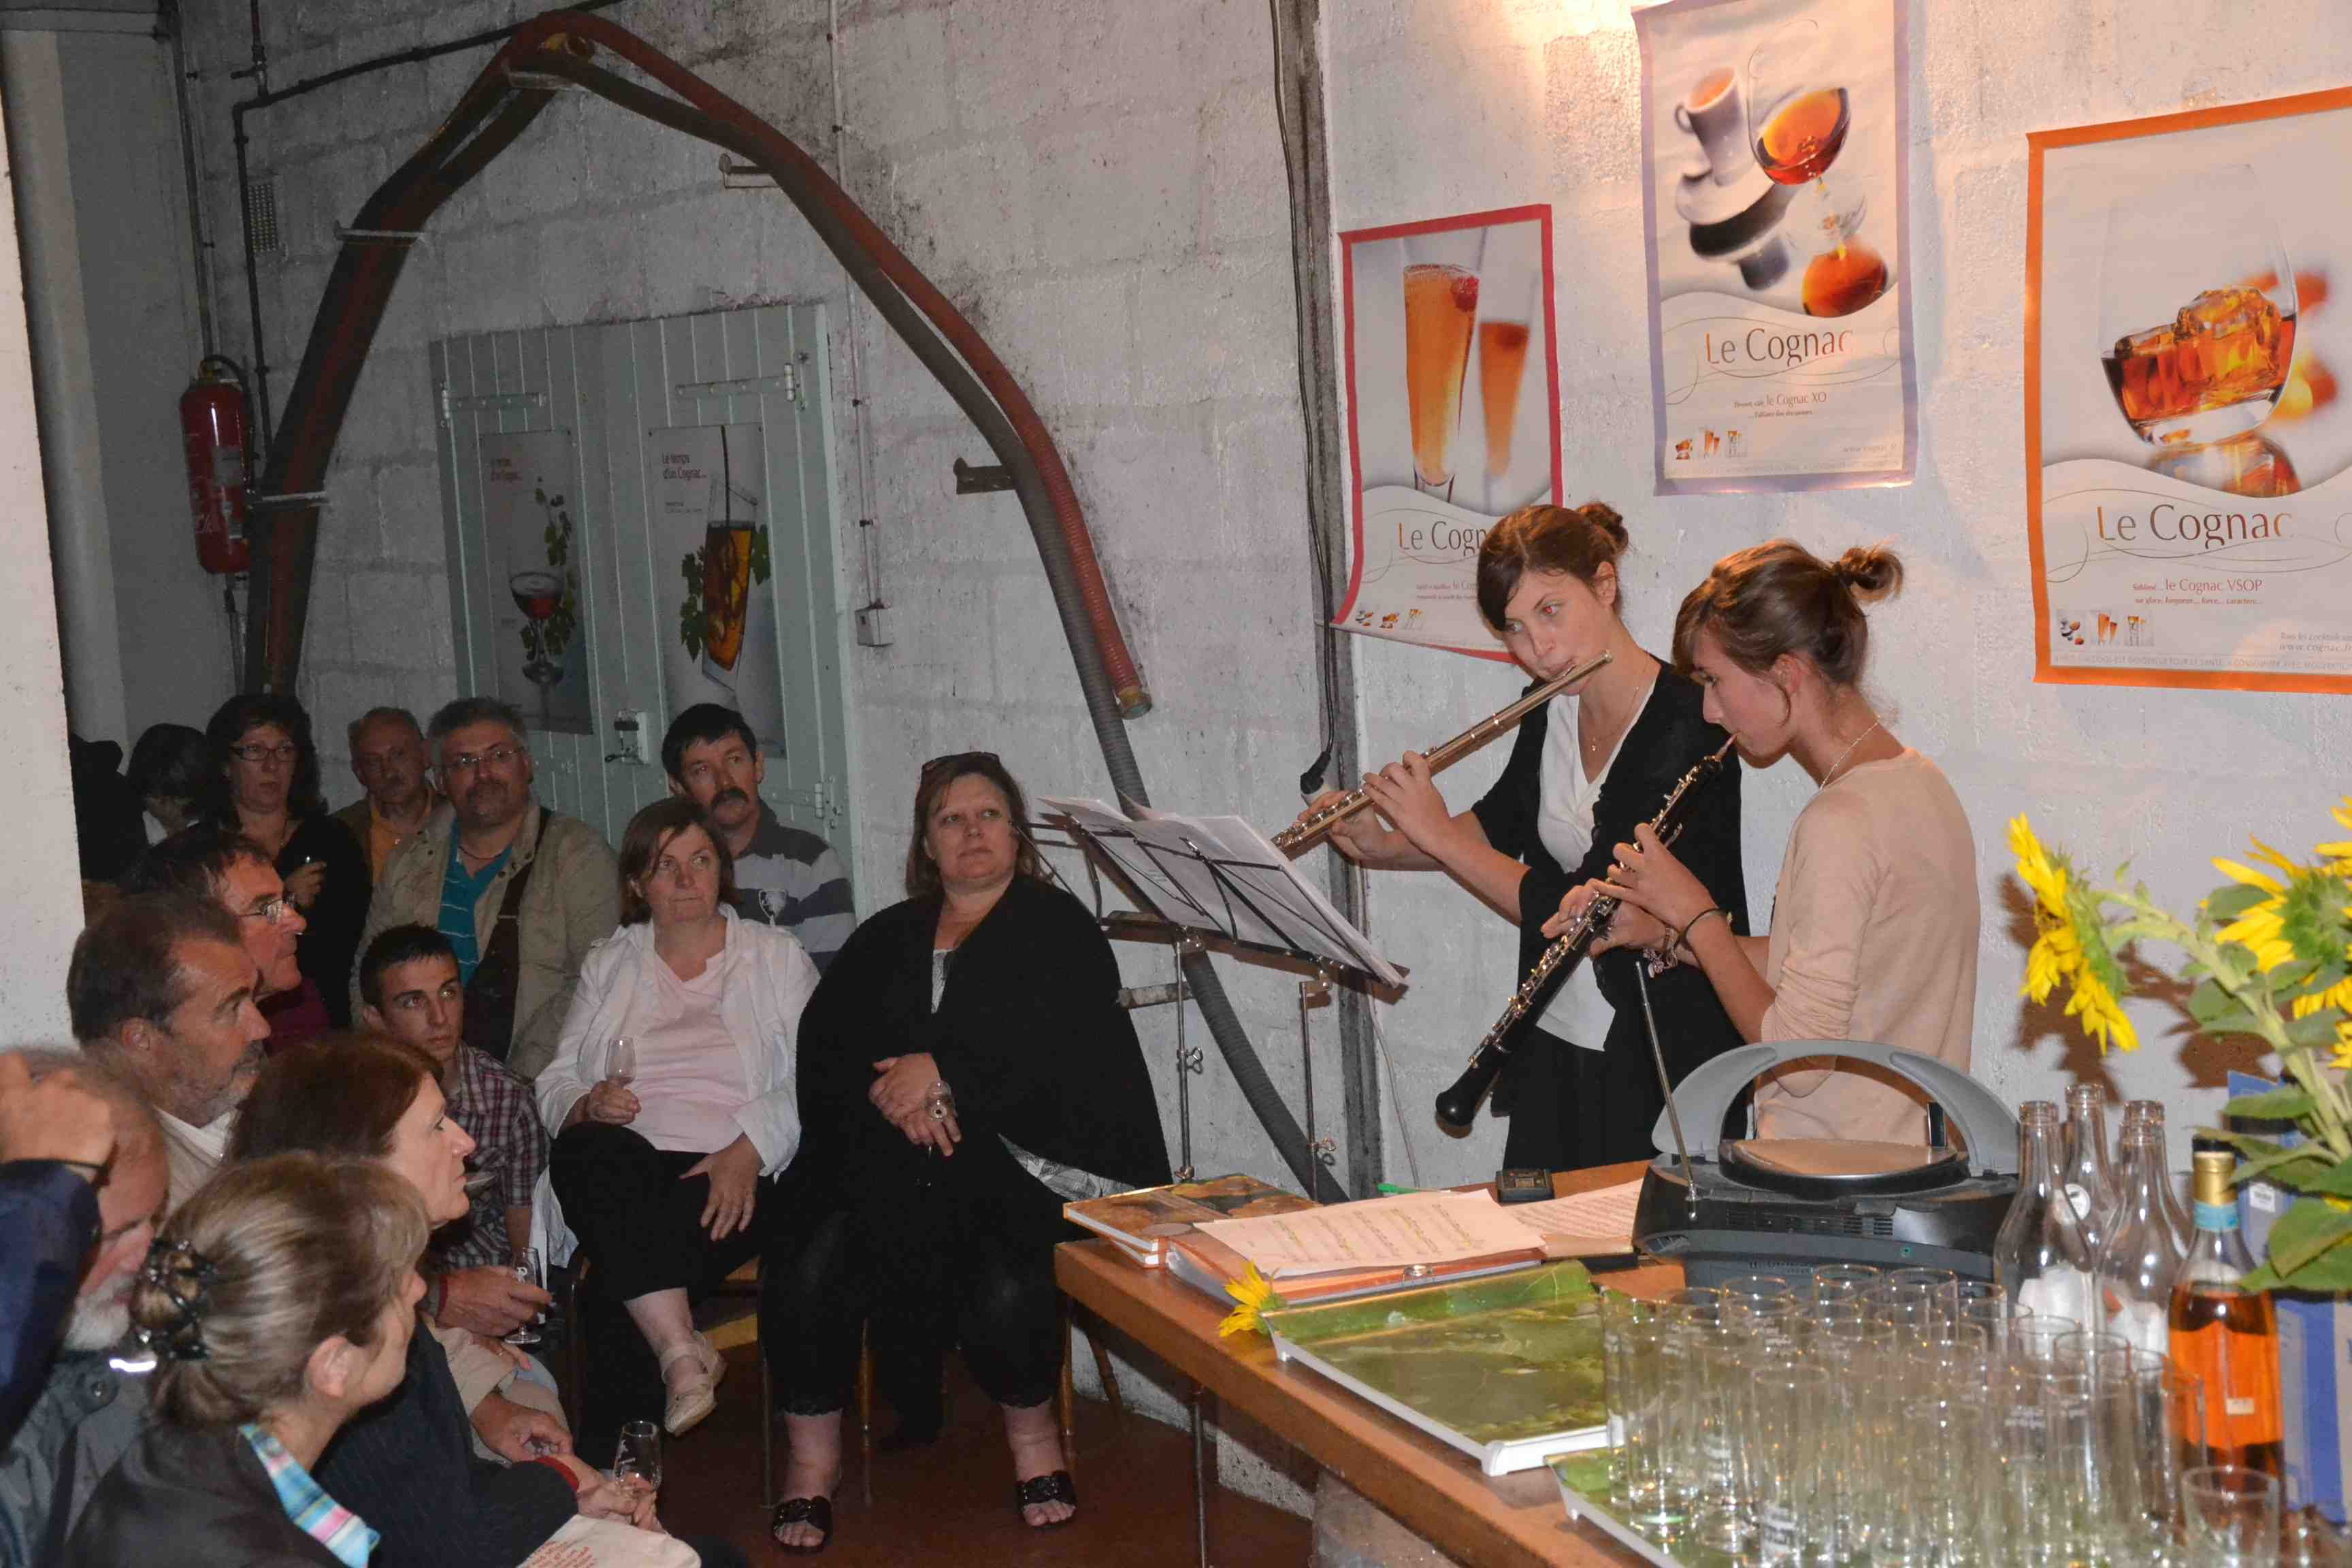 Cellar Event at Cognac Birius